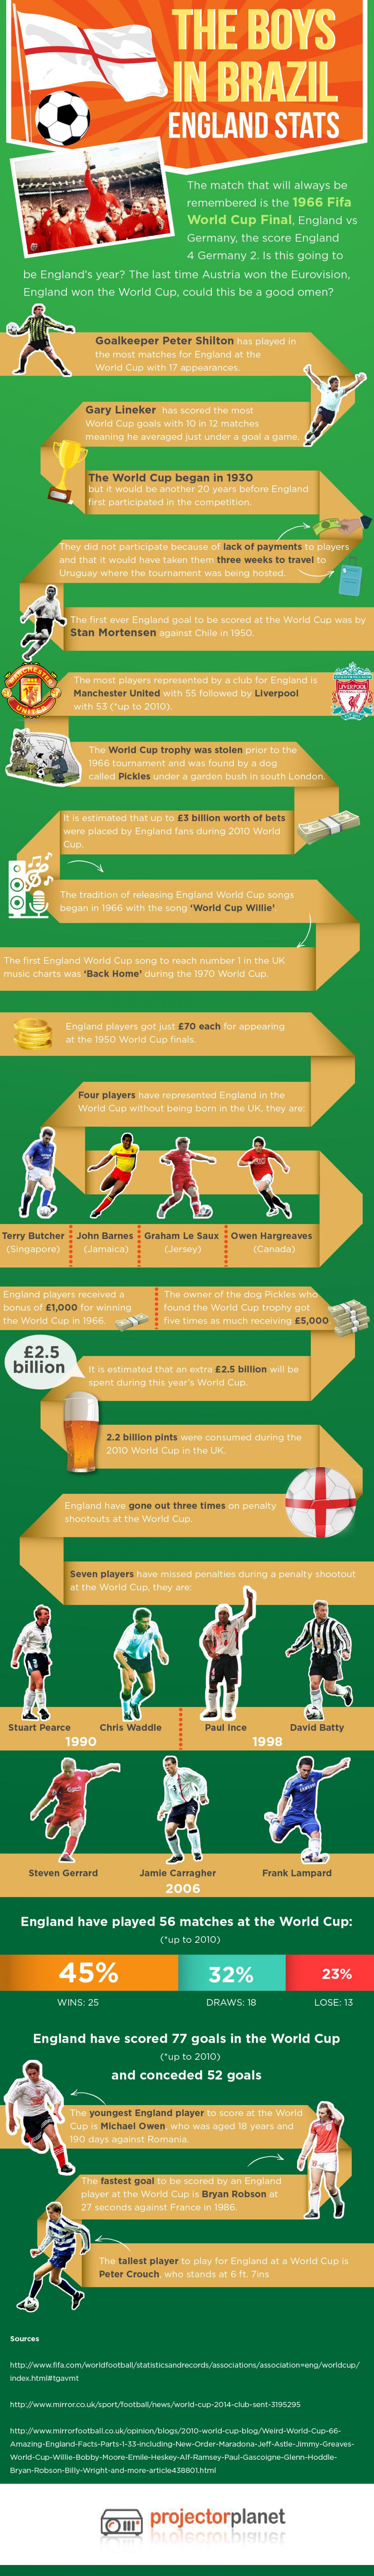 The Boys in Brazil - England Stats Infographic